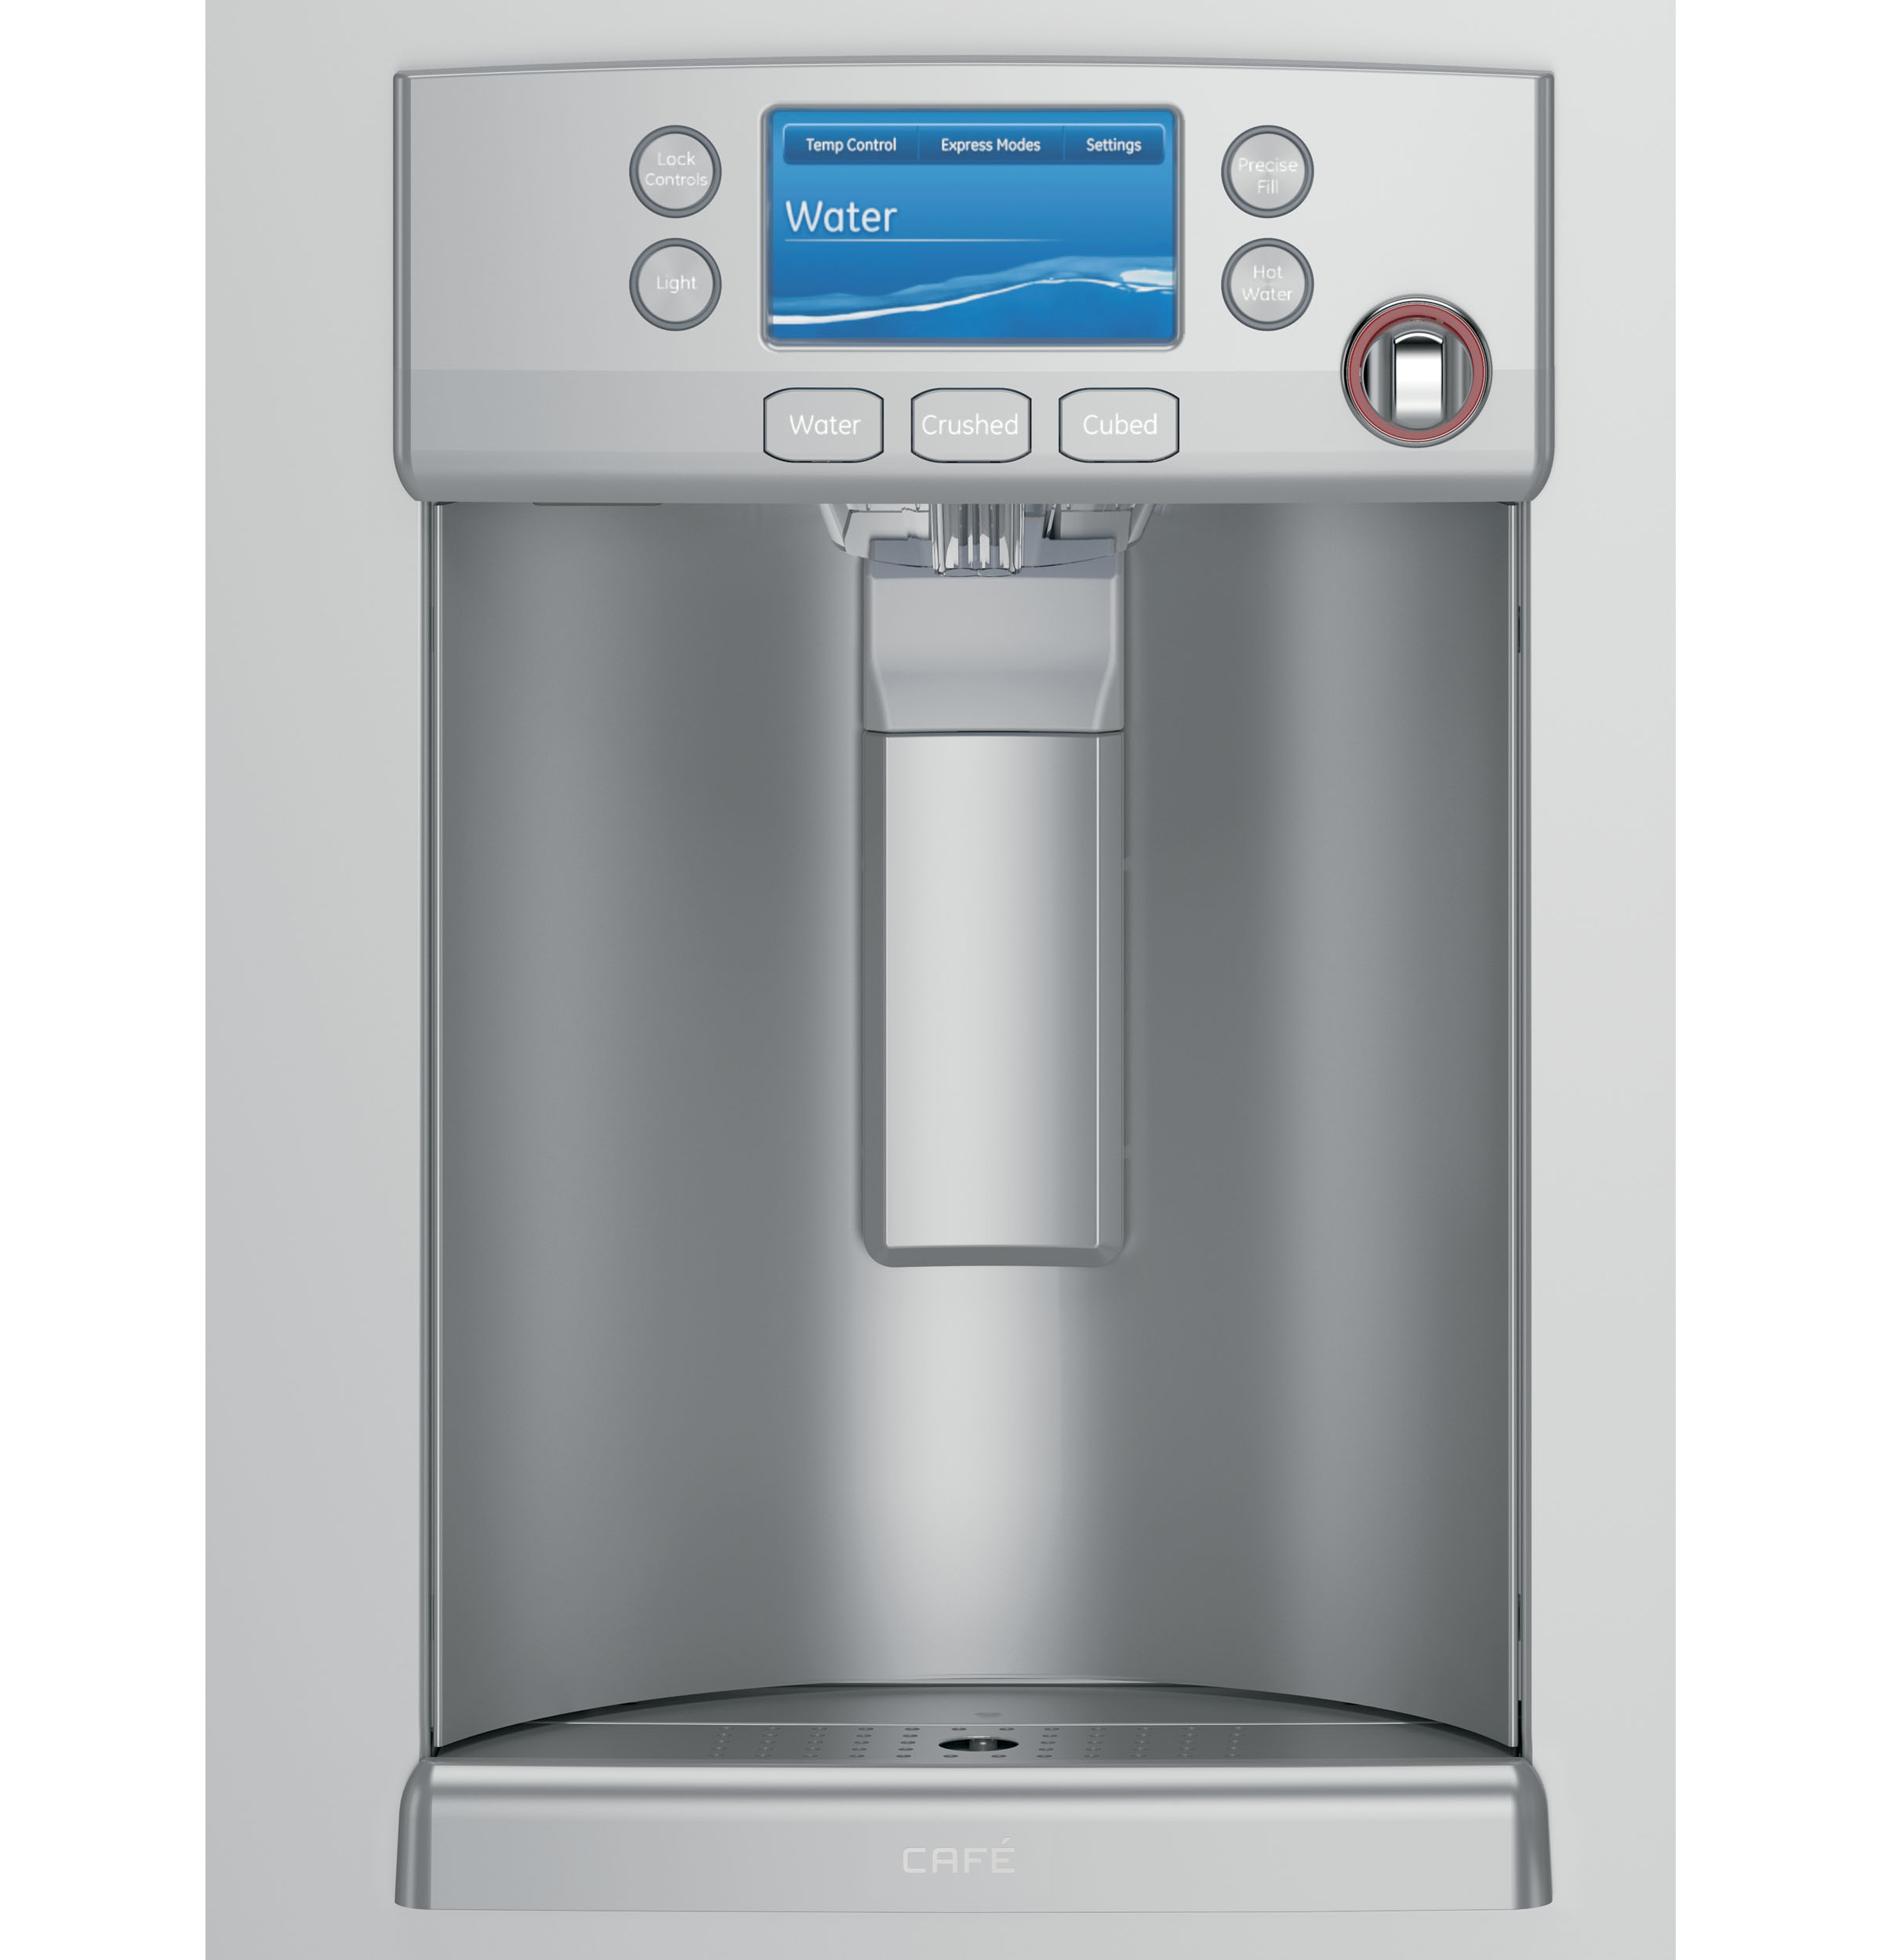 GE Café™ Series ENERGY STAR® 27.8 Cu. Ft. French-Door Refrigerator with Hot Water Dispenser